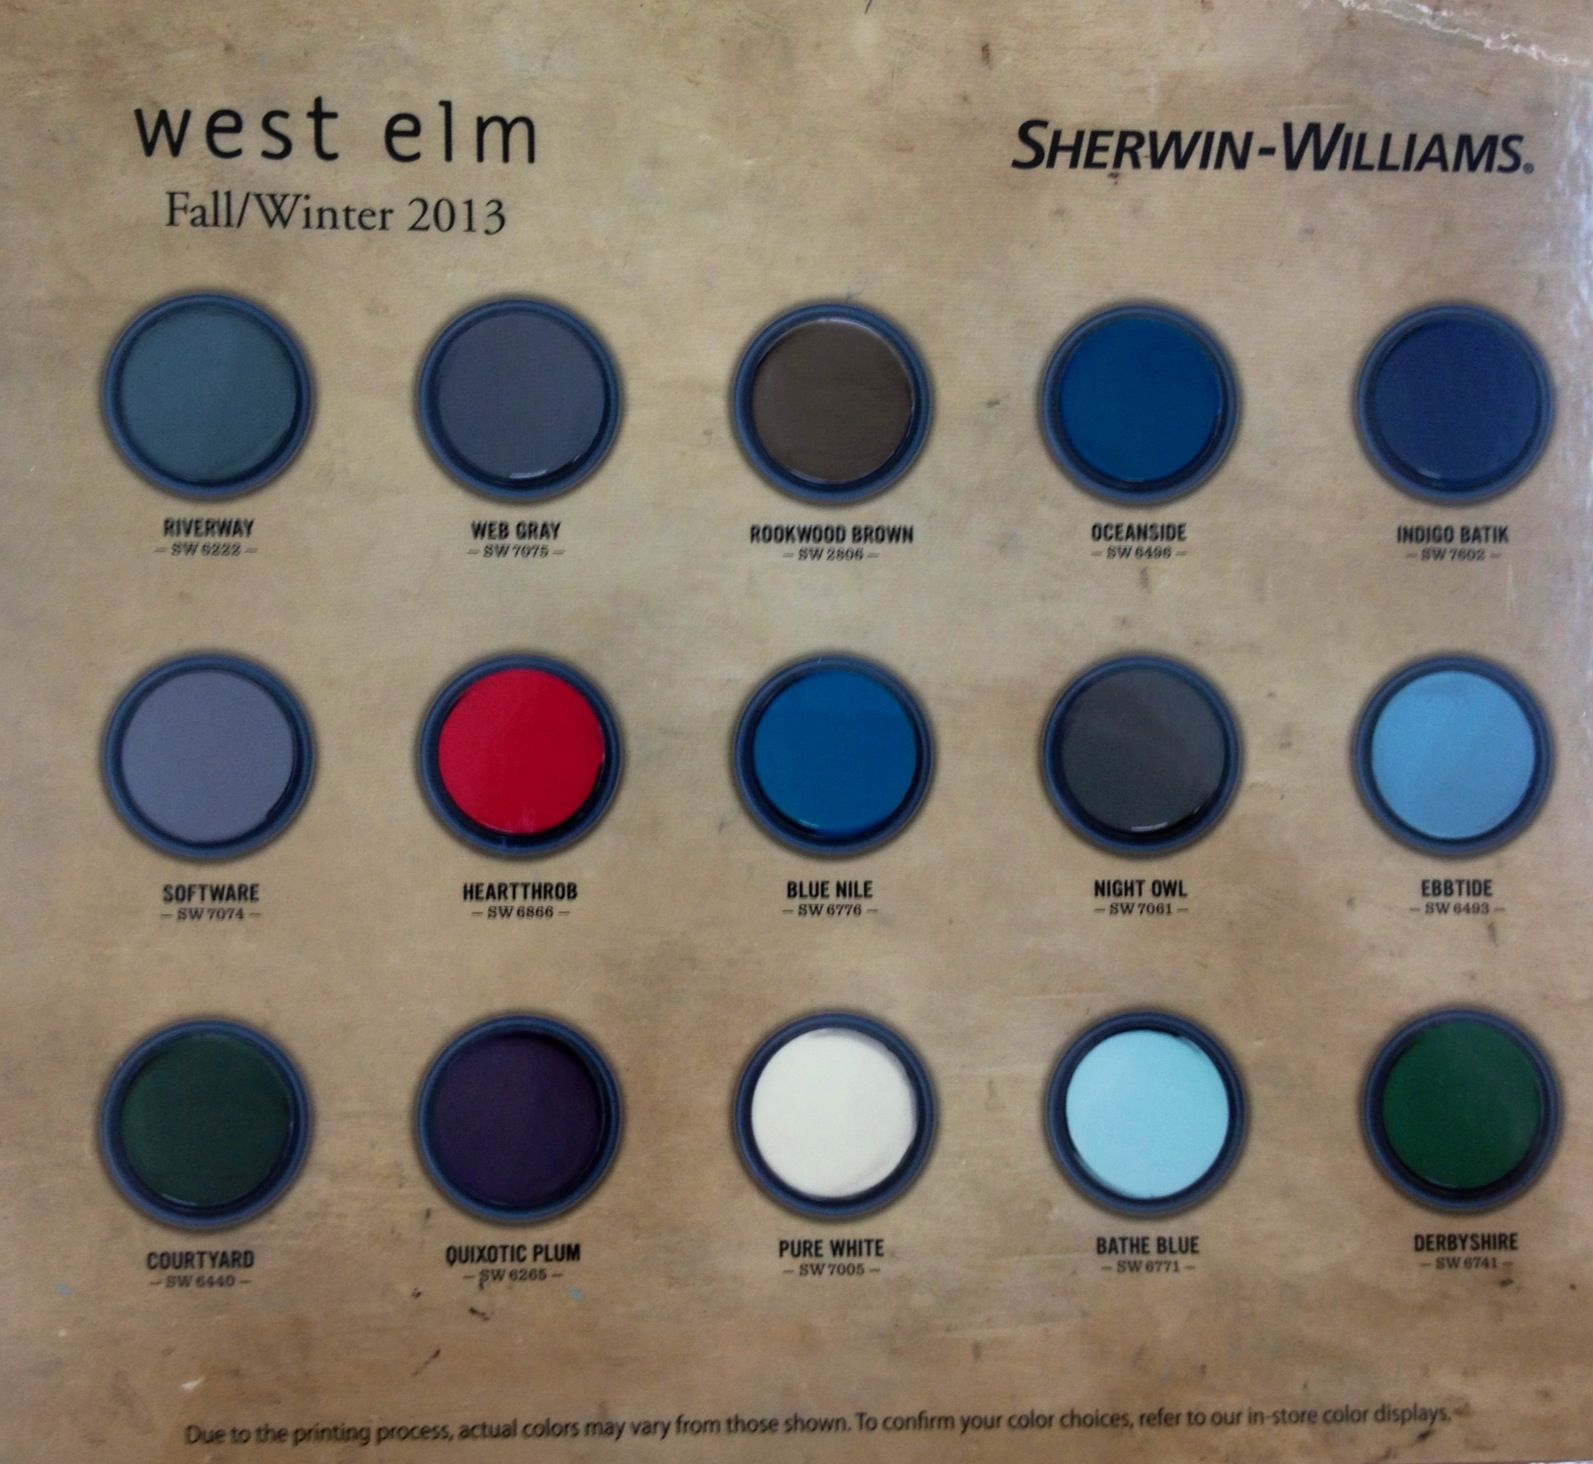 Pottery barn paint colors 2013 - Sherwin Williams West Elm Paint Colors Fall Winter 2013